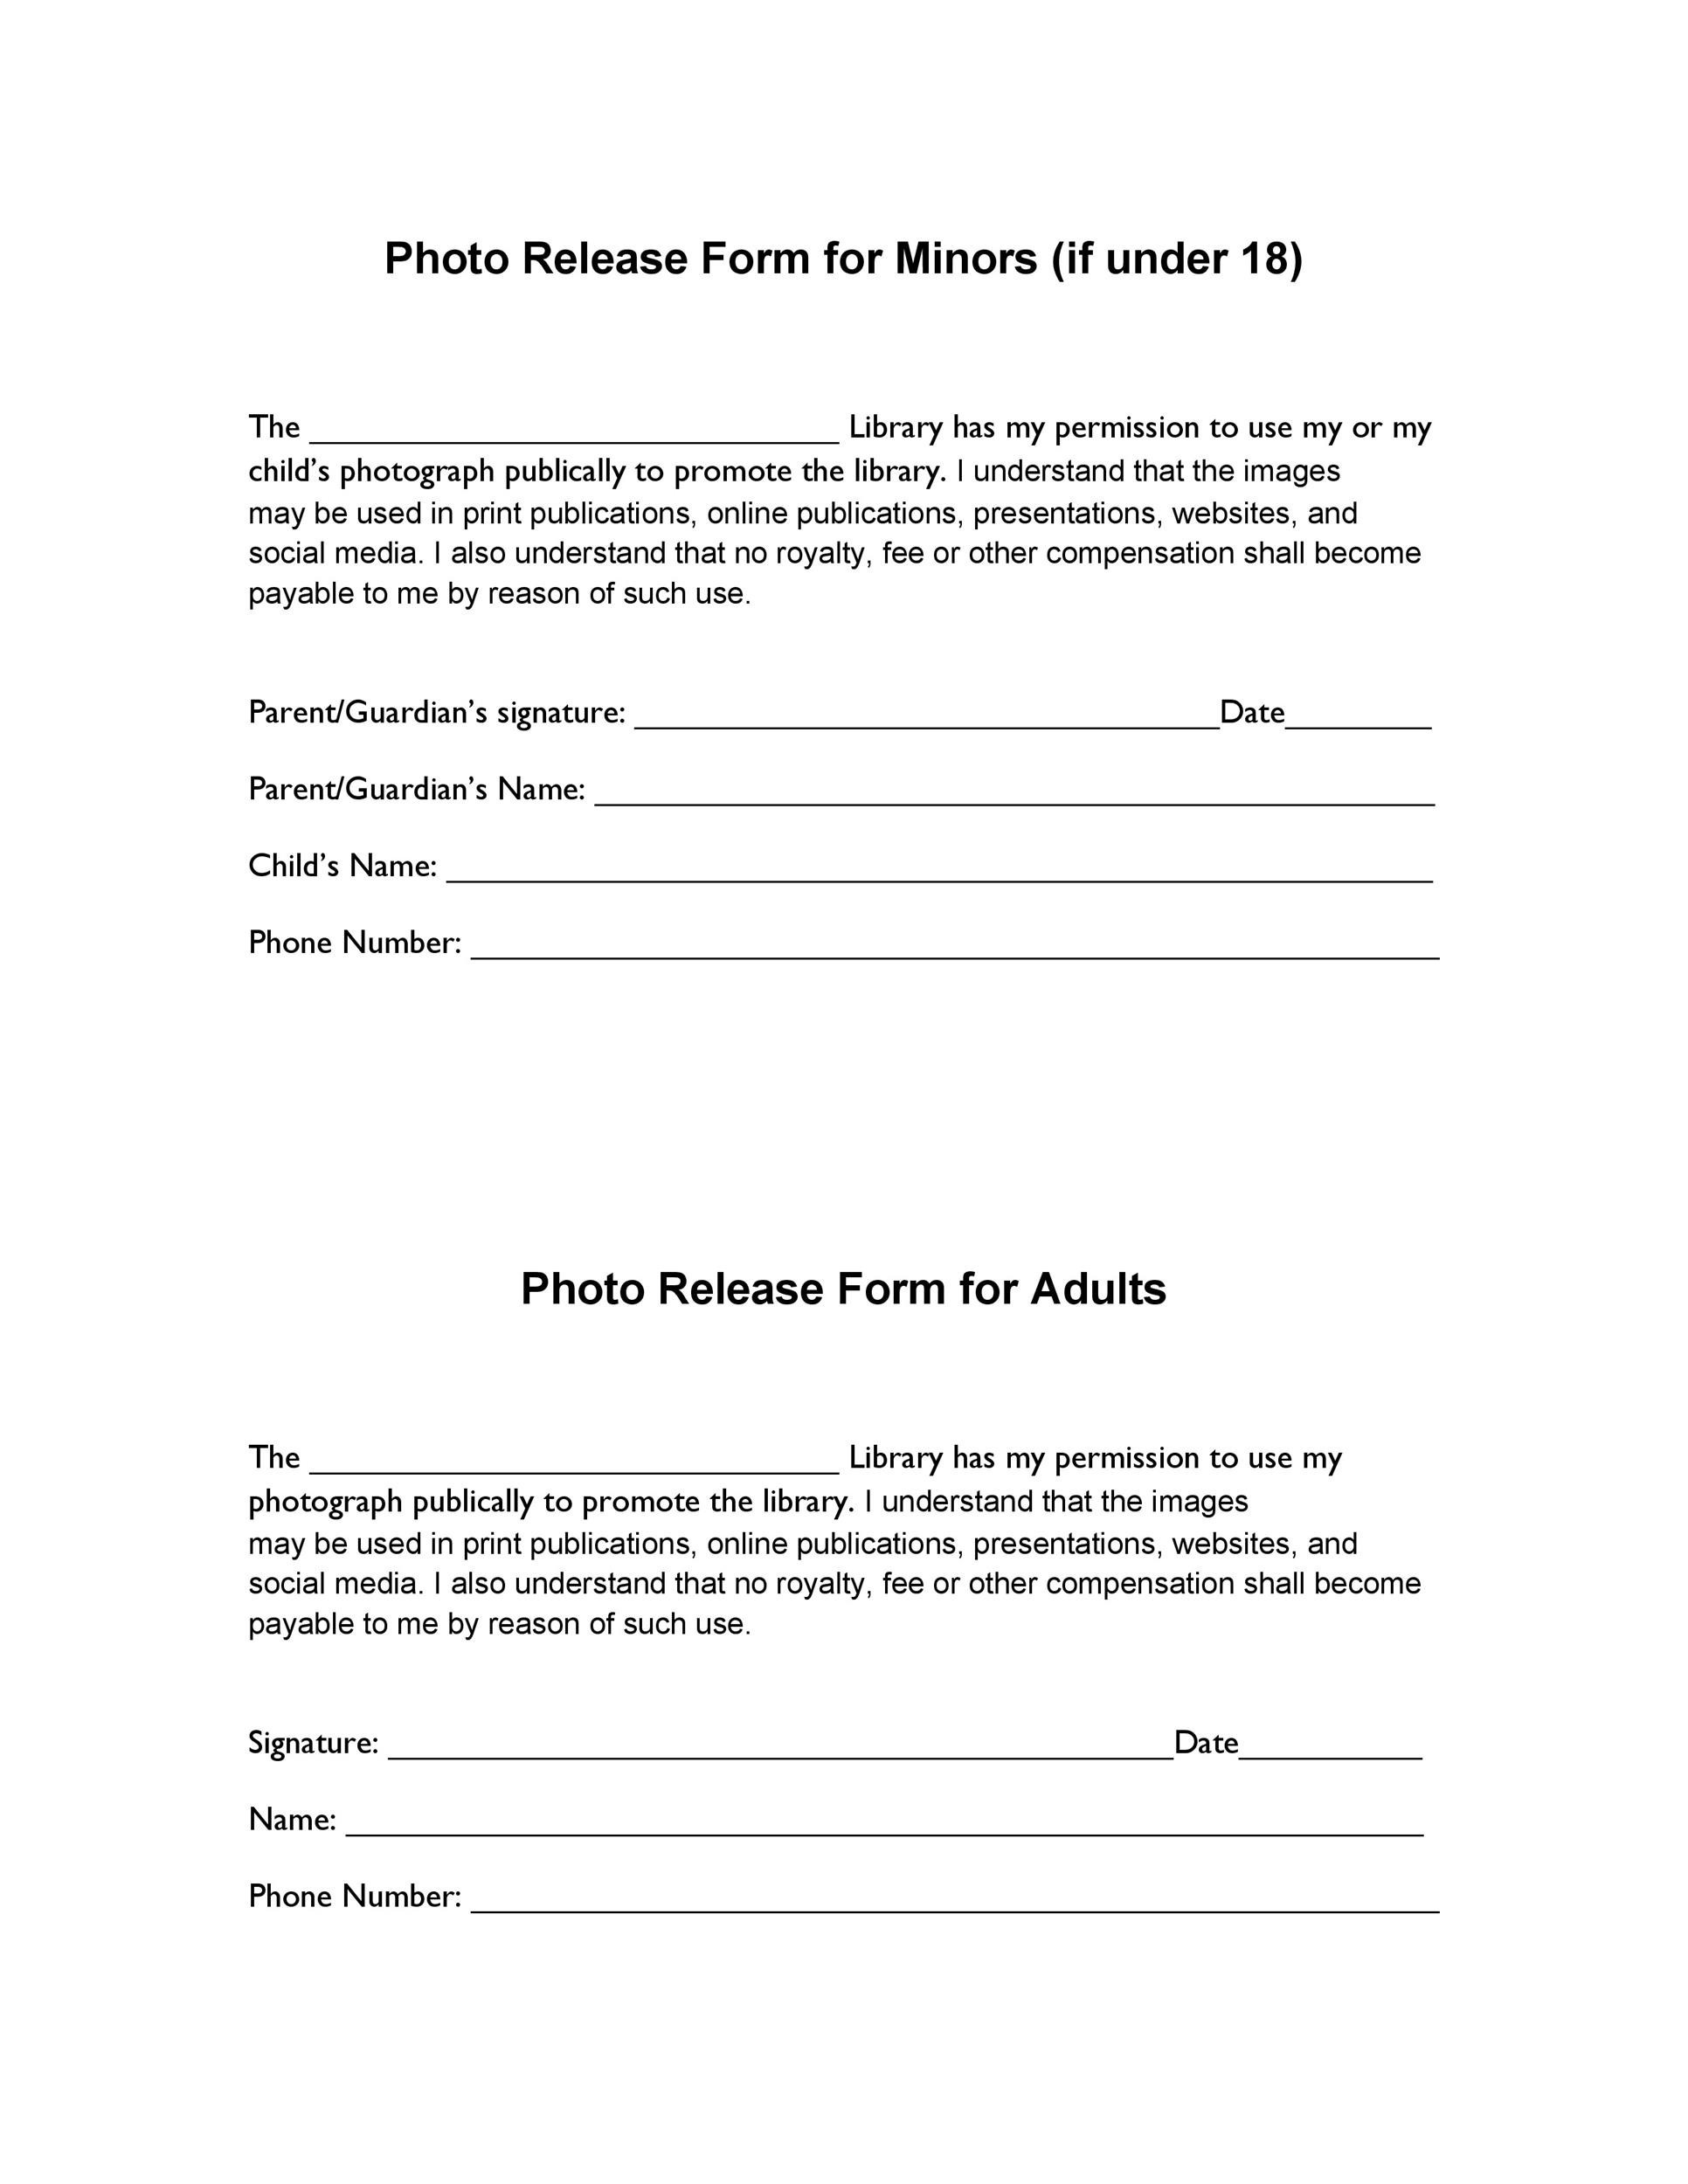 53 free photo release form templates word pdf for Photography permission form template